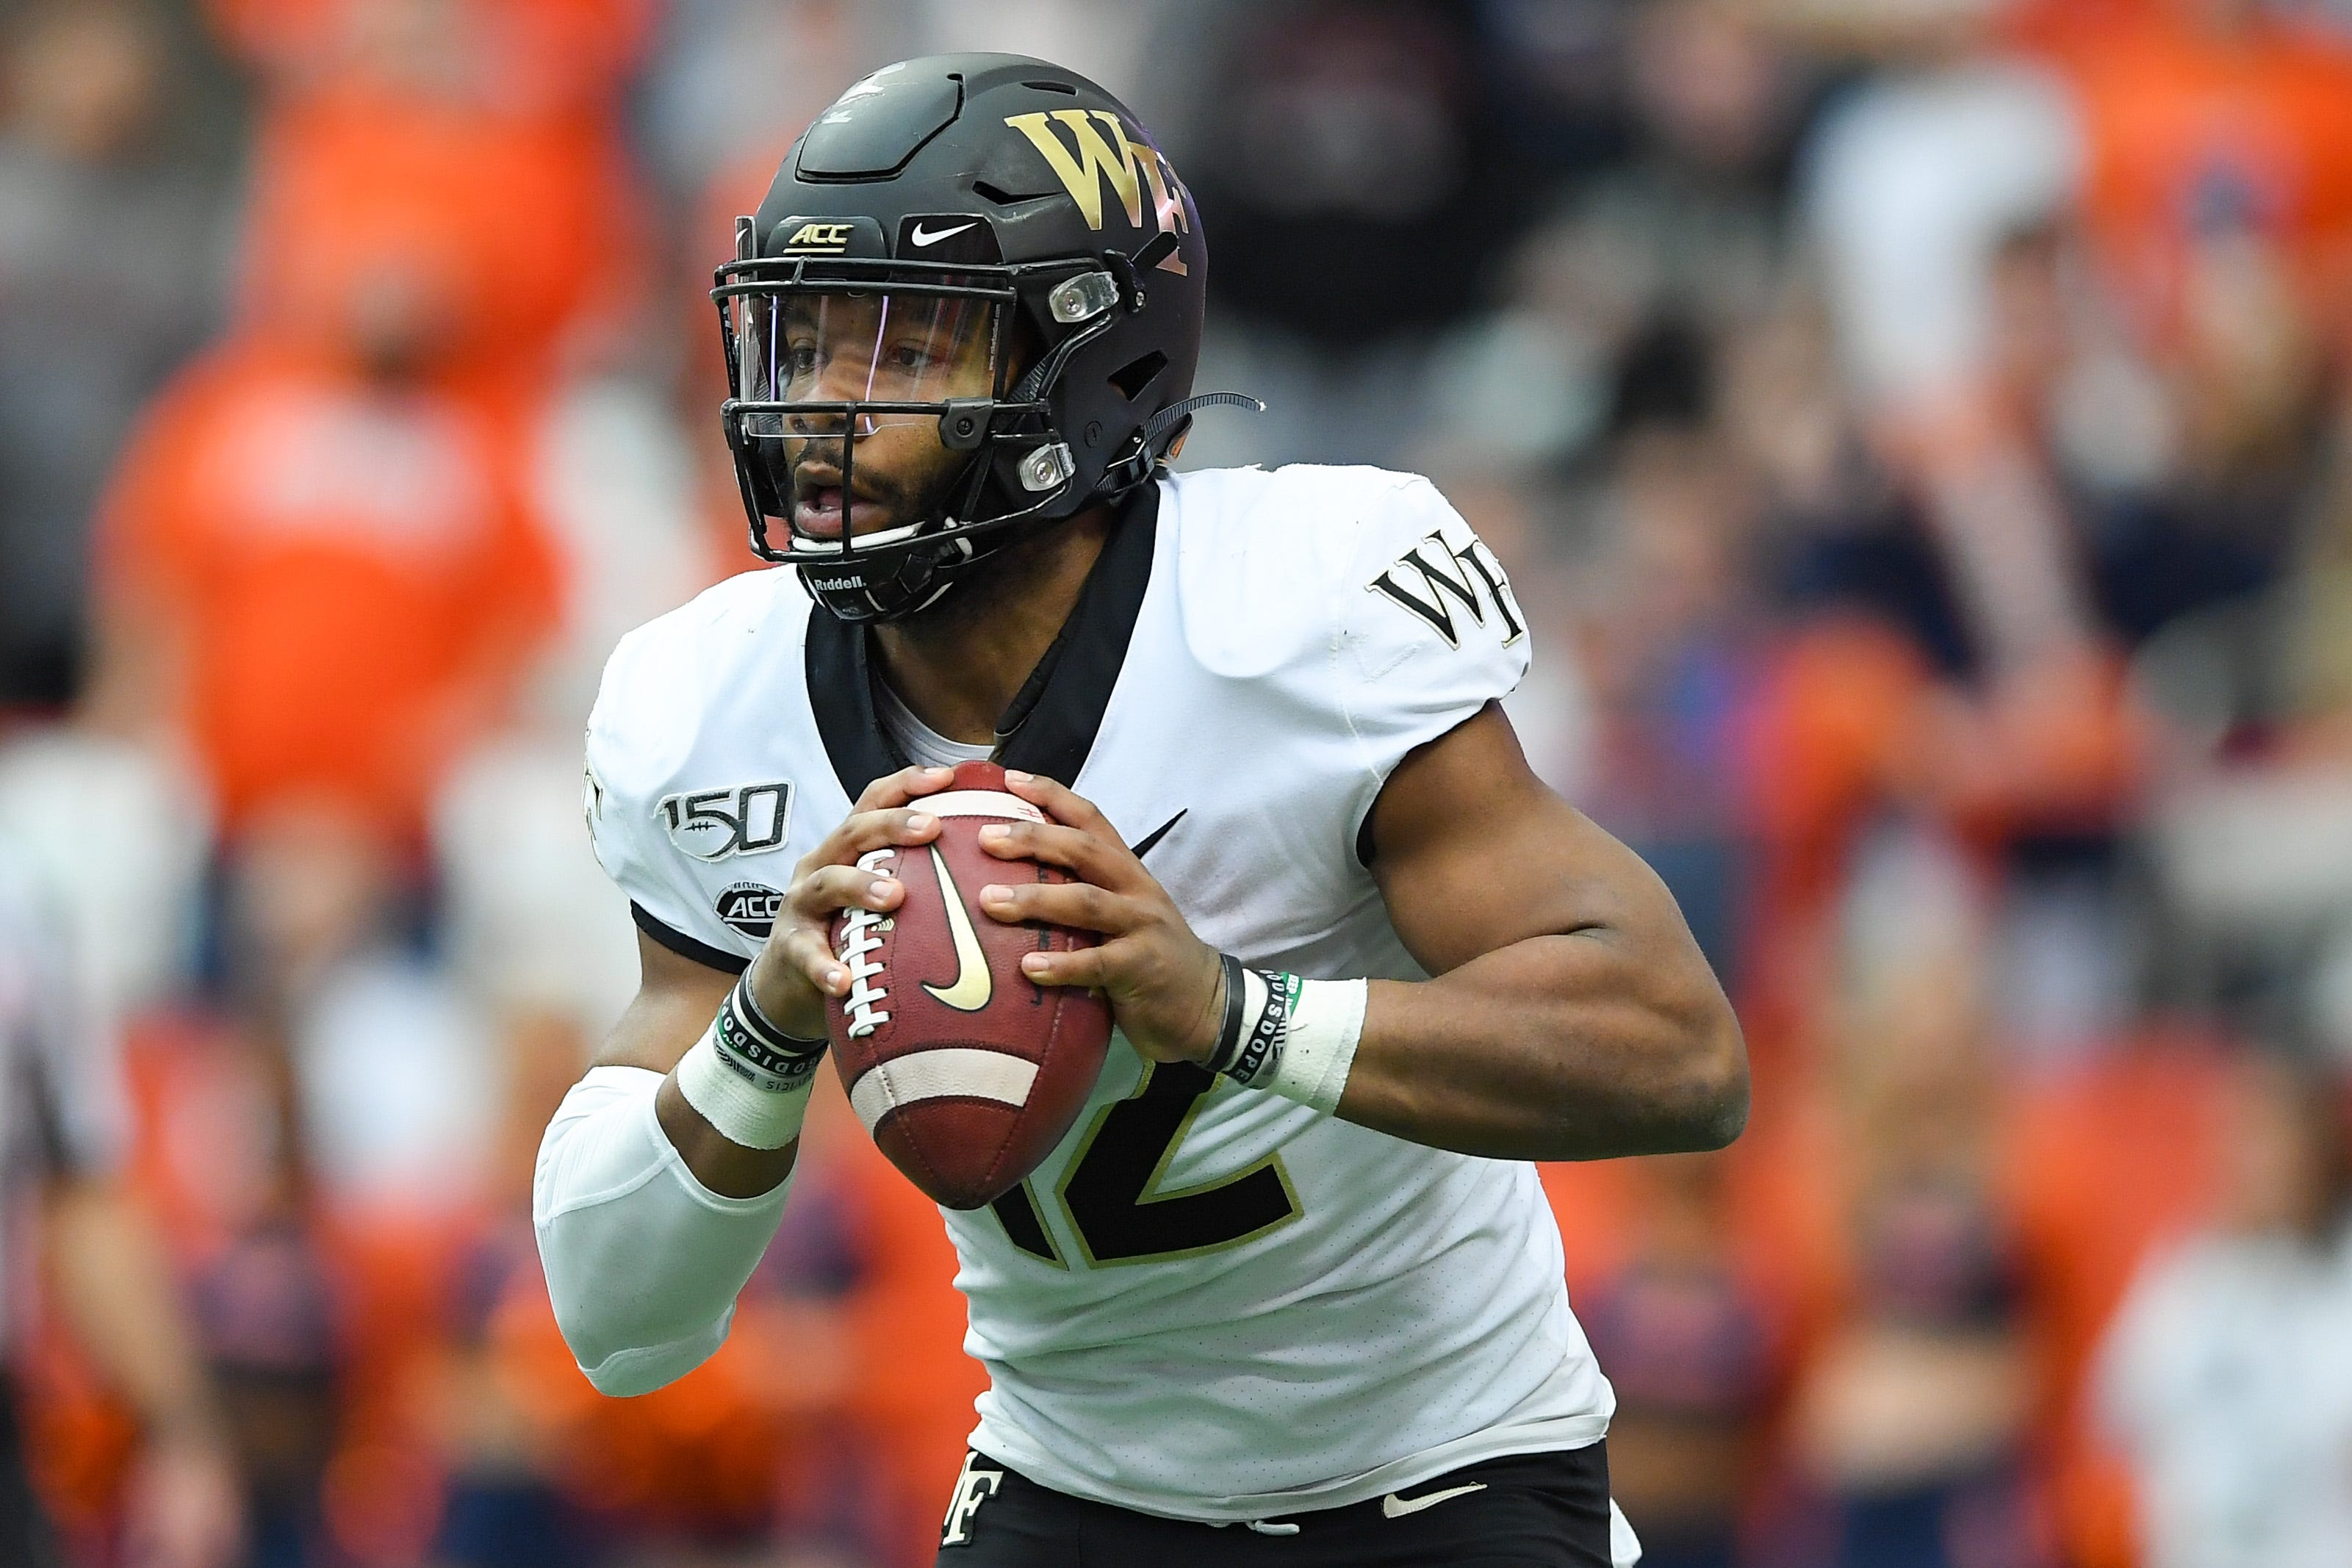 2021 NFL draft s best undrafted players: Cade Johnson, Jamie Newman offer big upside